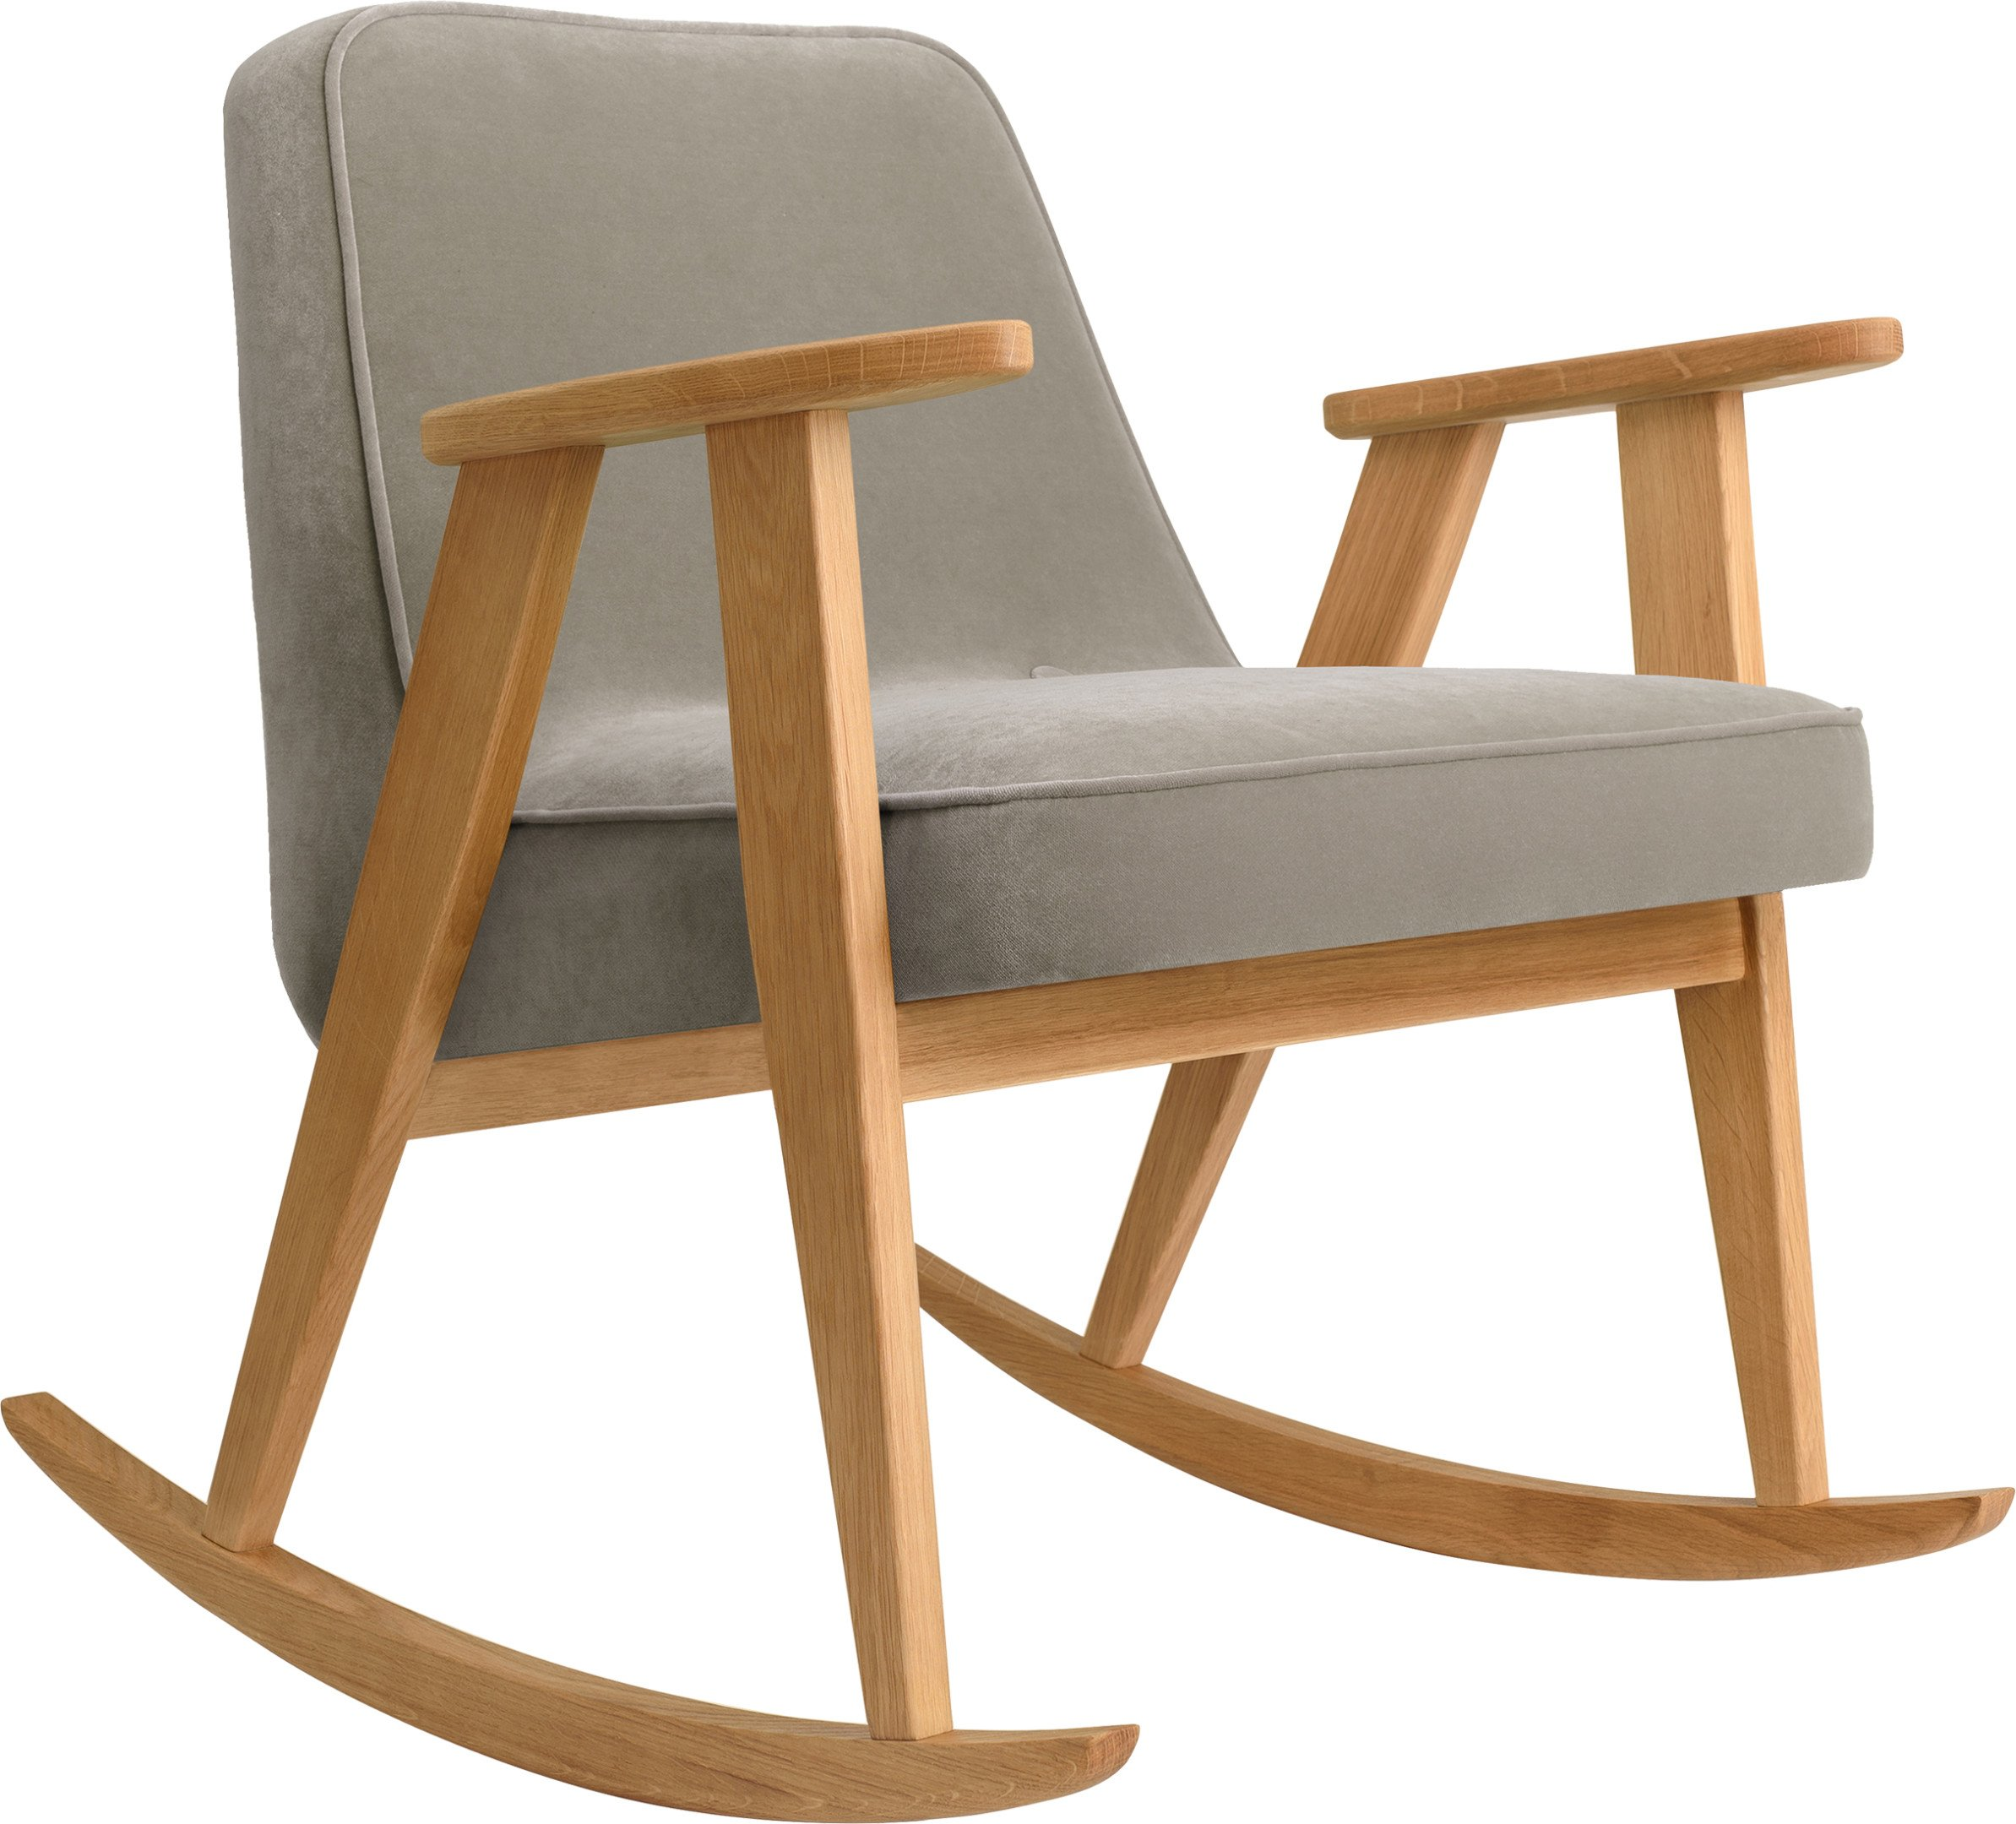 366 Rocking Chair Velvet Mouse Grey (natural oak) by Józef Chierowski